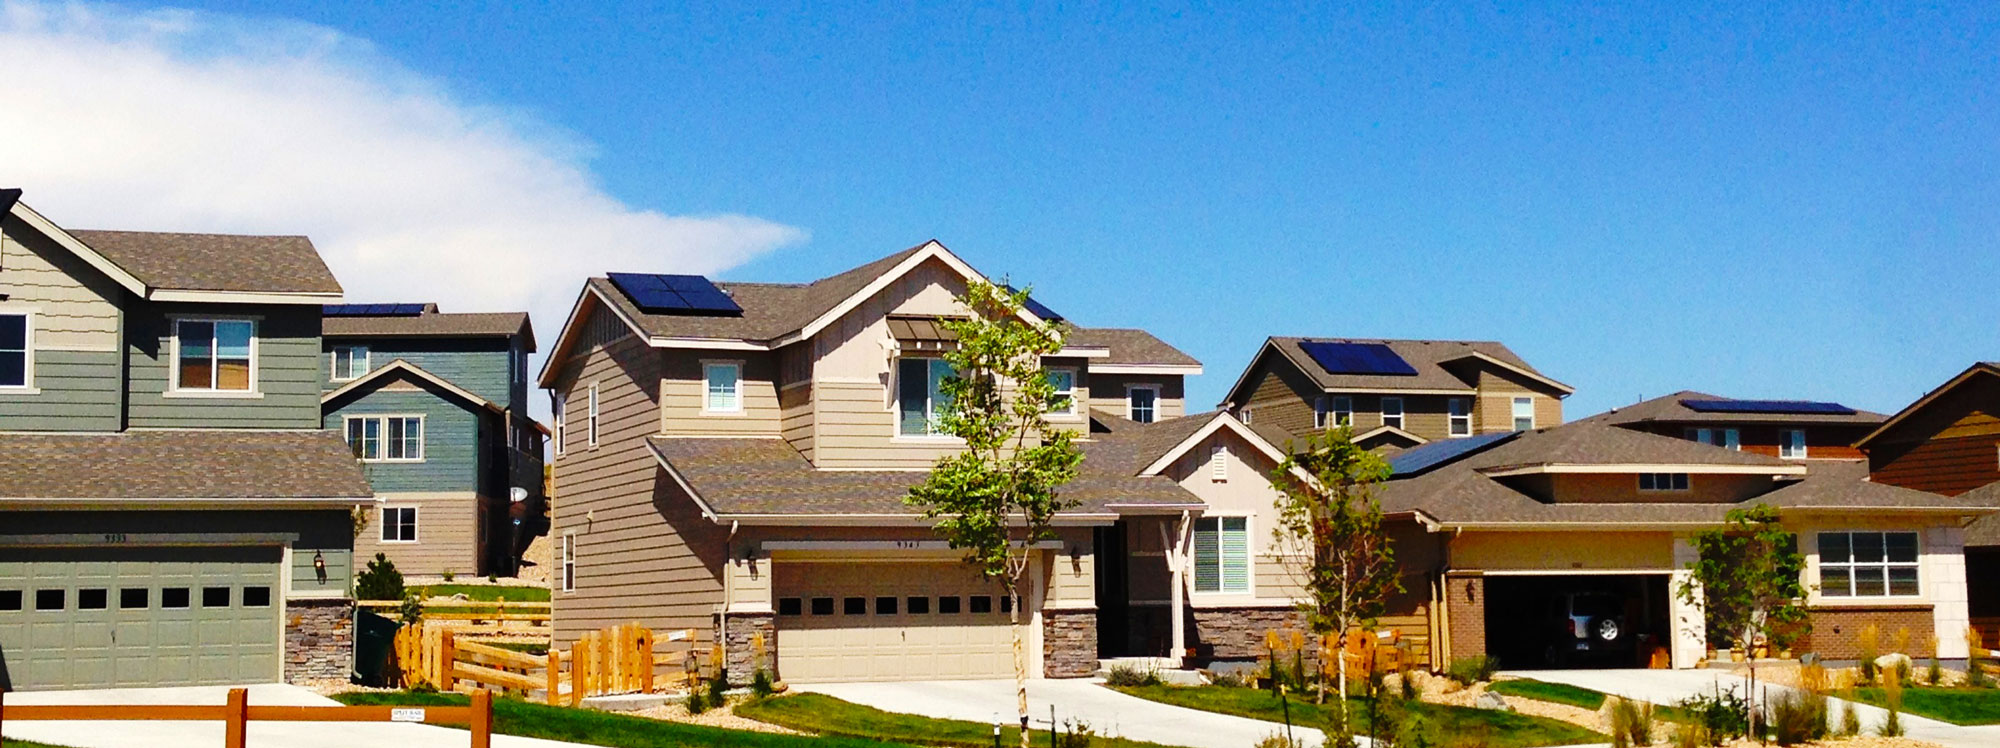 Residential Rooftop Solar Power Systems